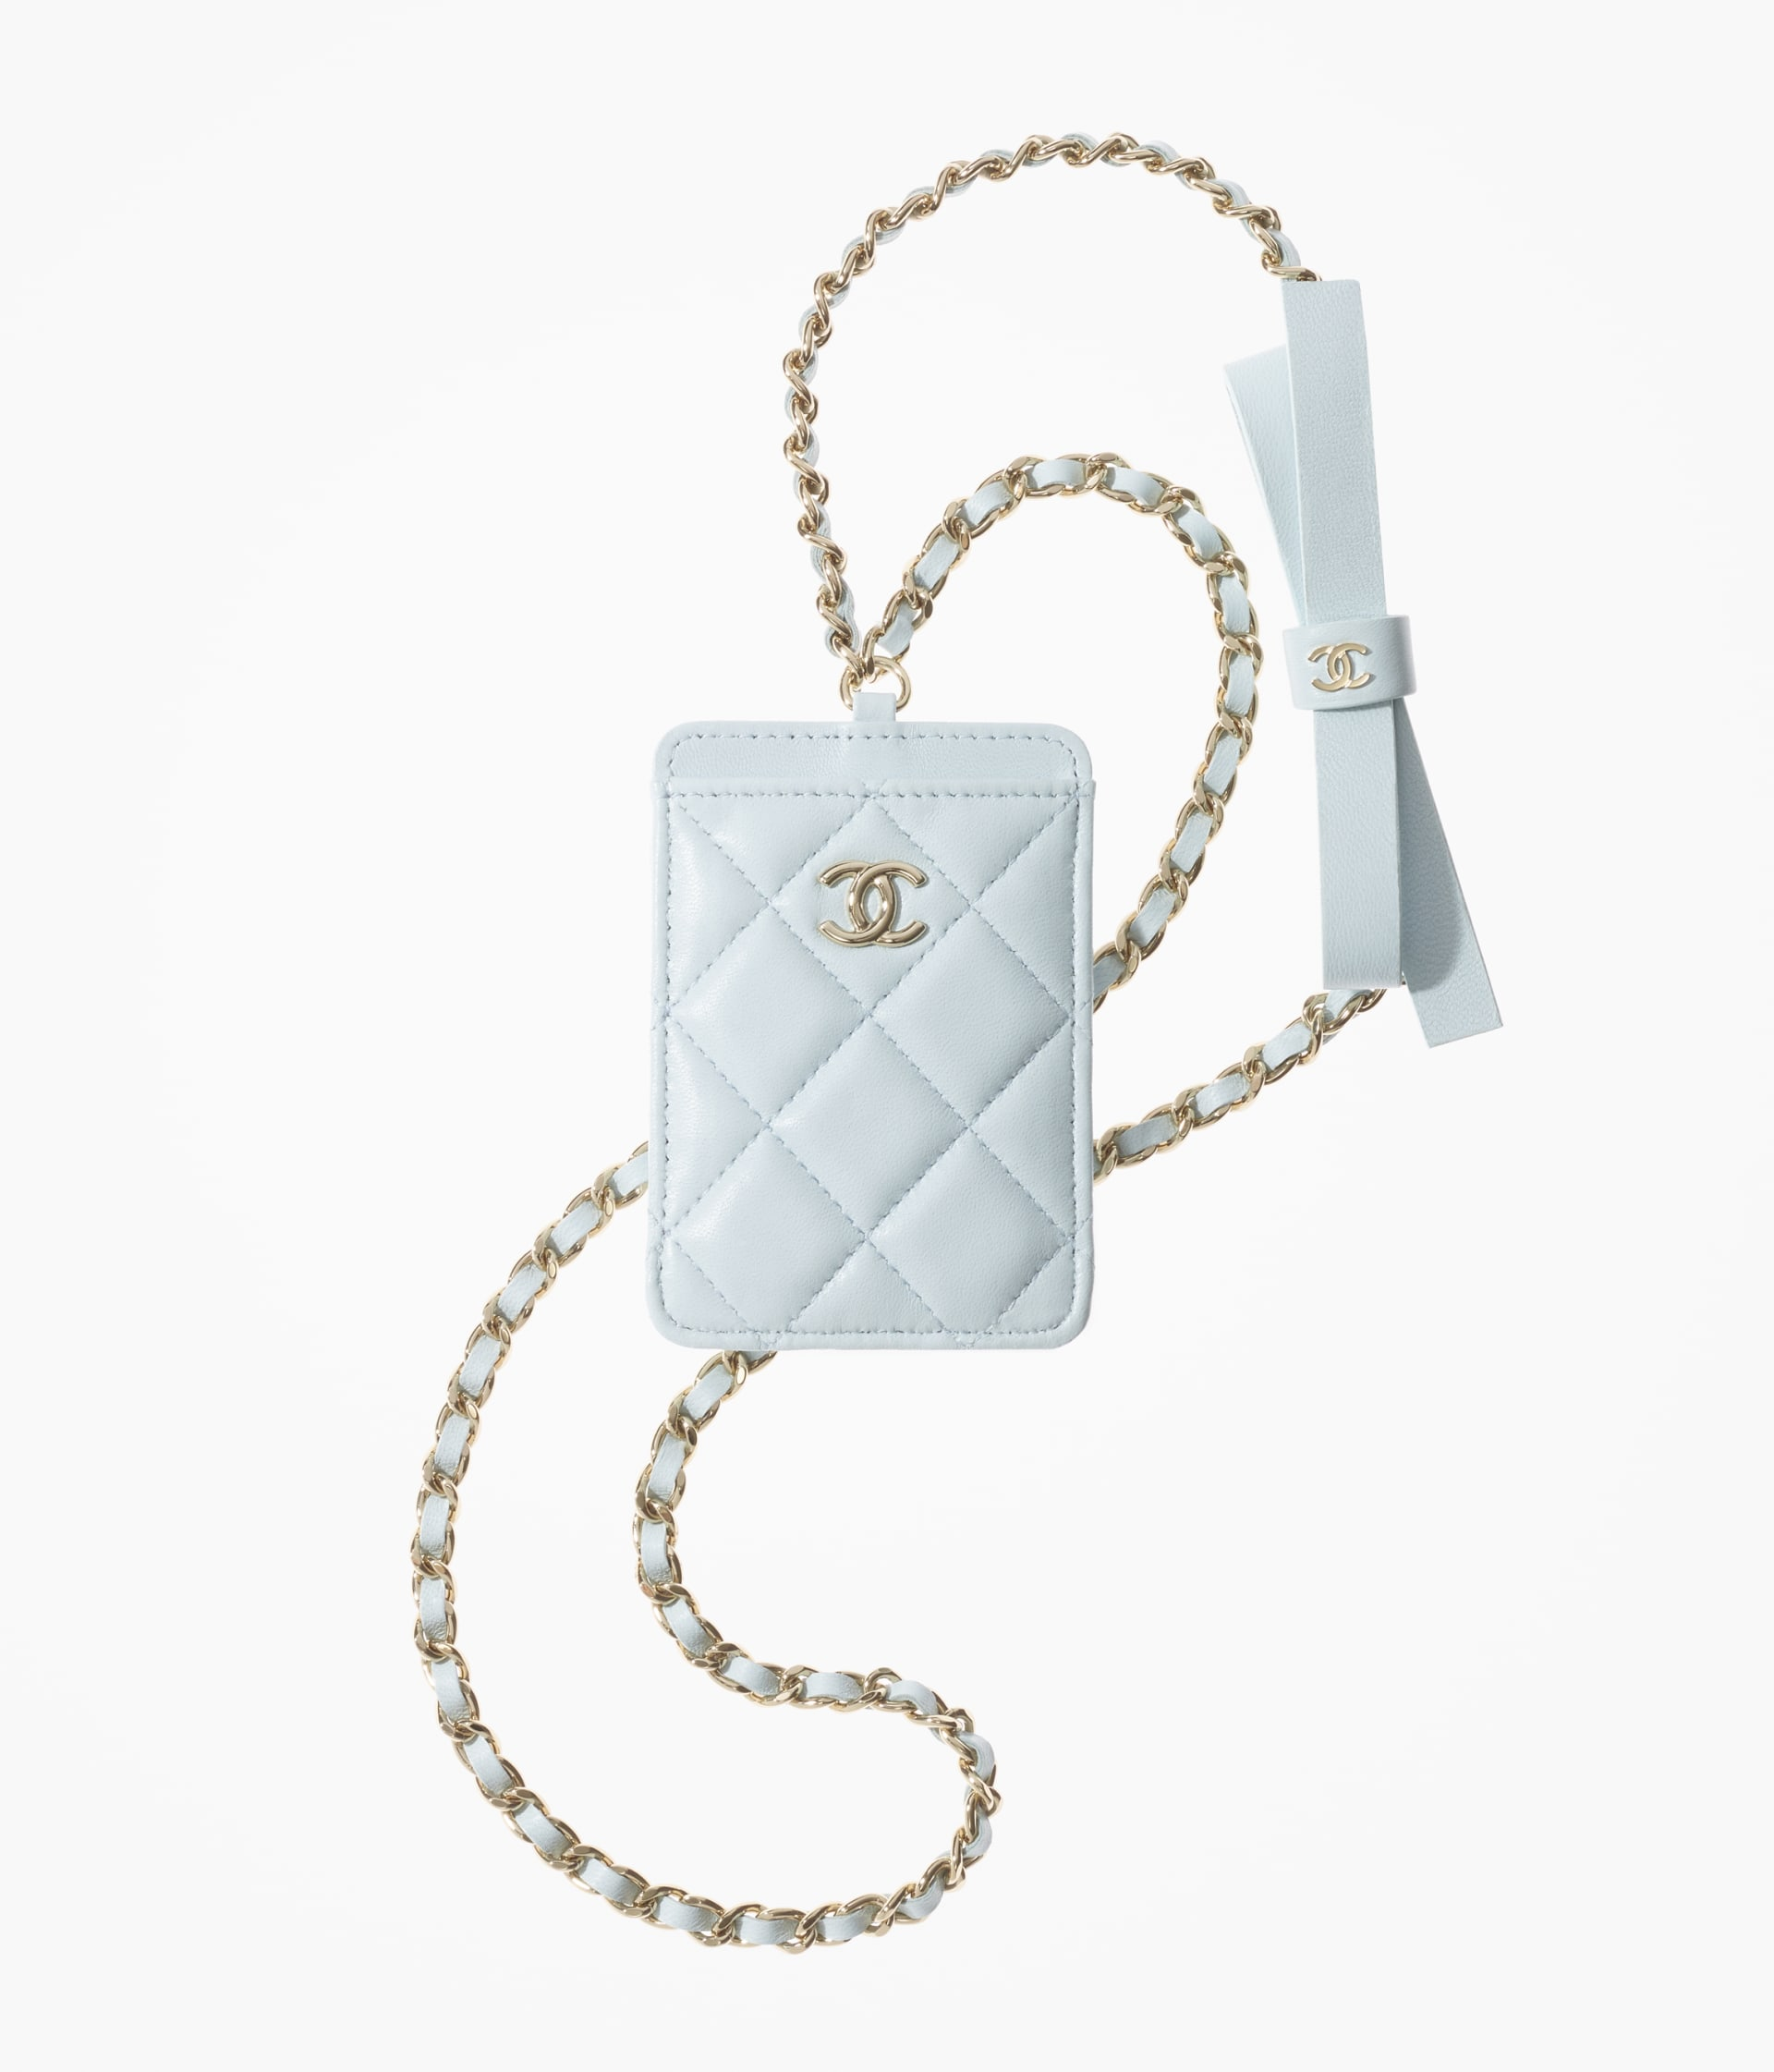 image 1 - Card Holder with Chain - Lambskin & Gold-Tone Metal - Light Blue